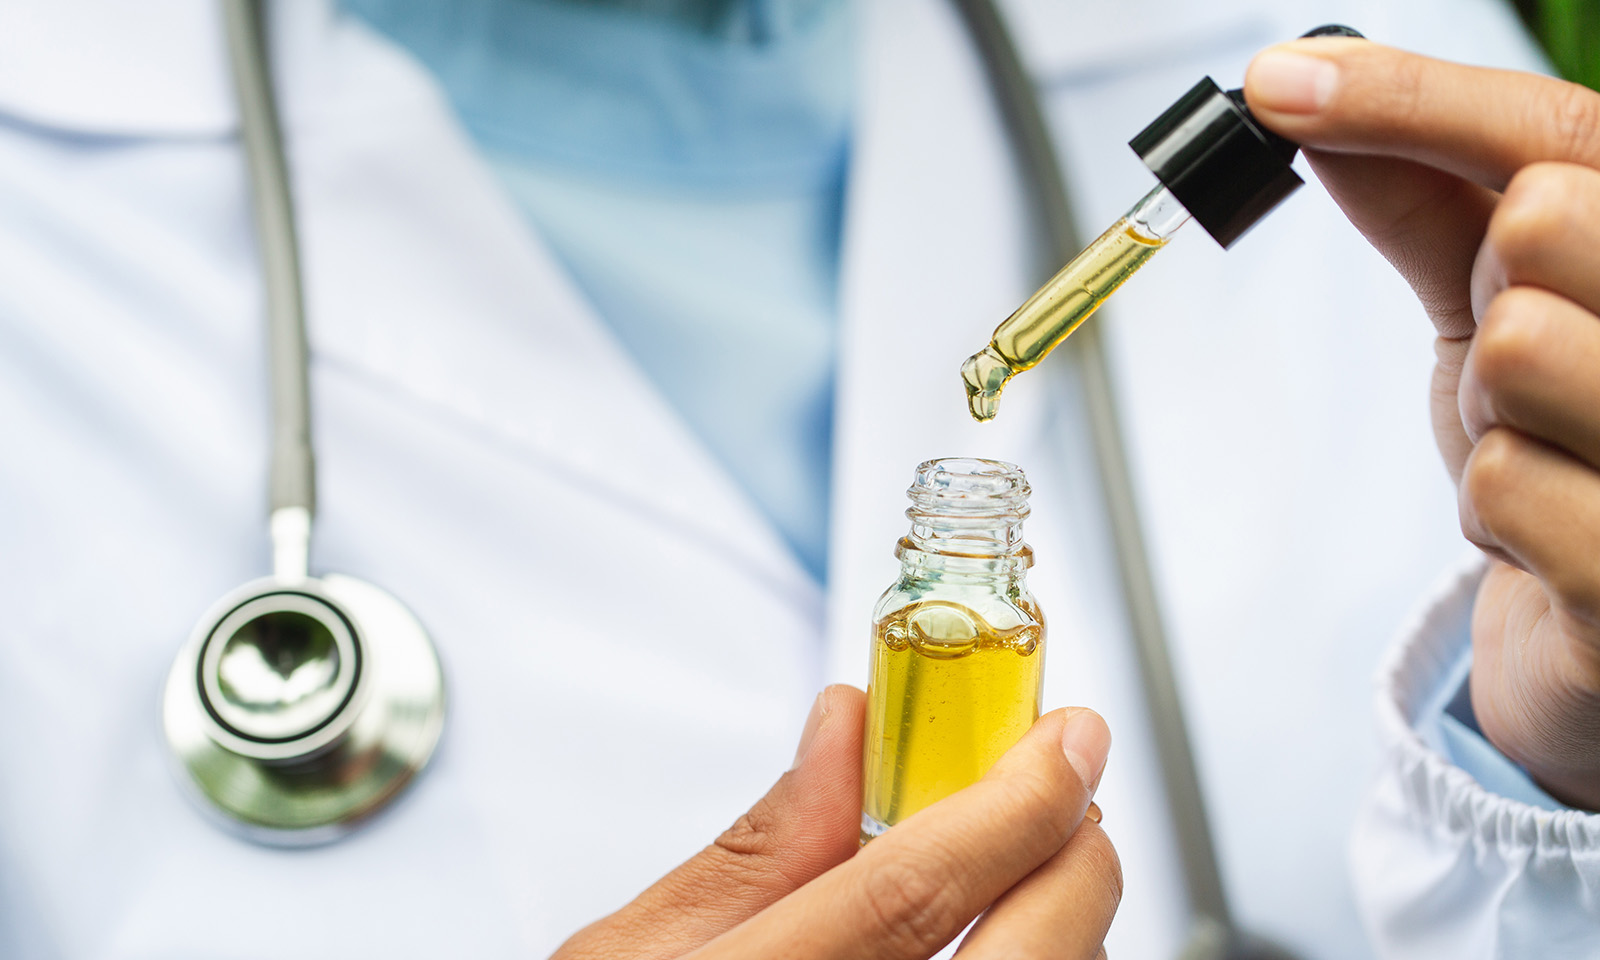 doctor-with-cbd-oil-what-you-can-expect-when-taking-cbd-oil-main-image